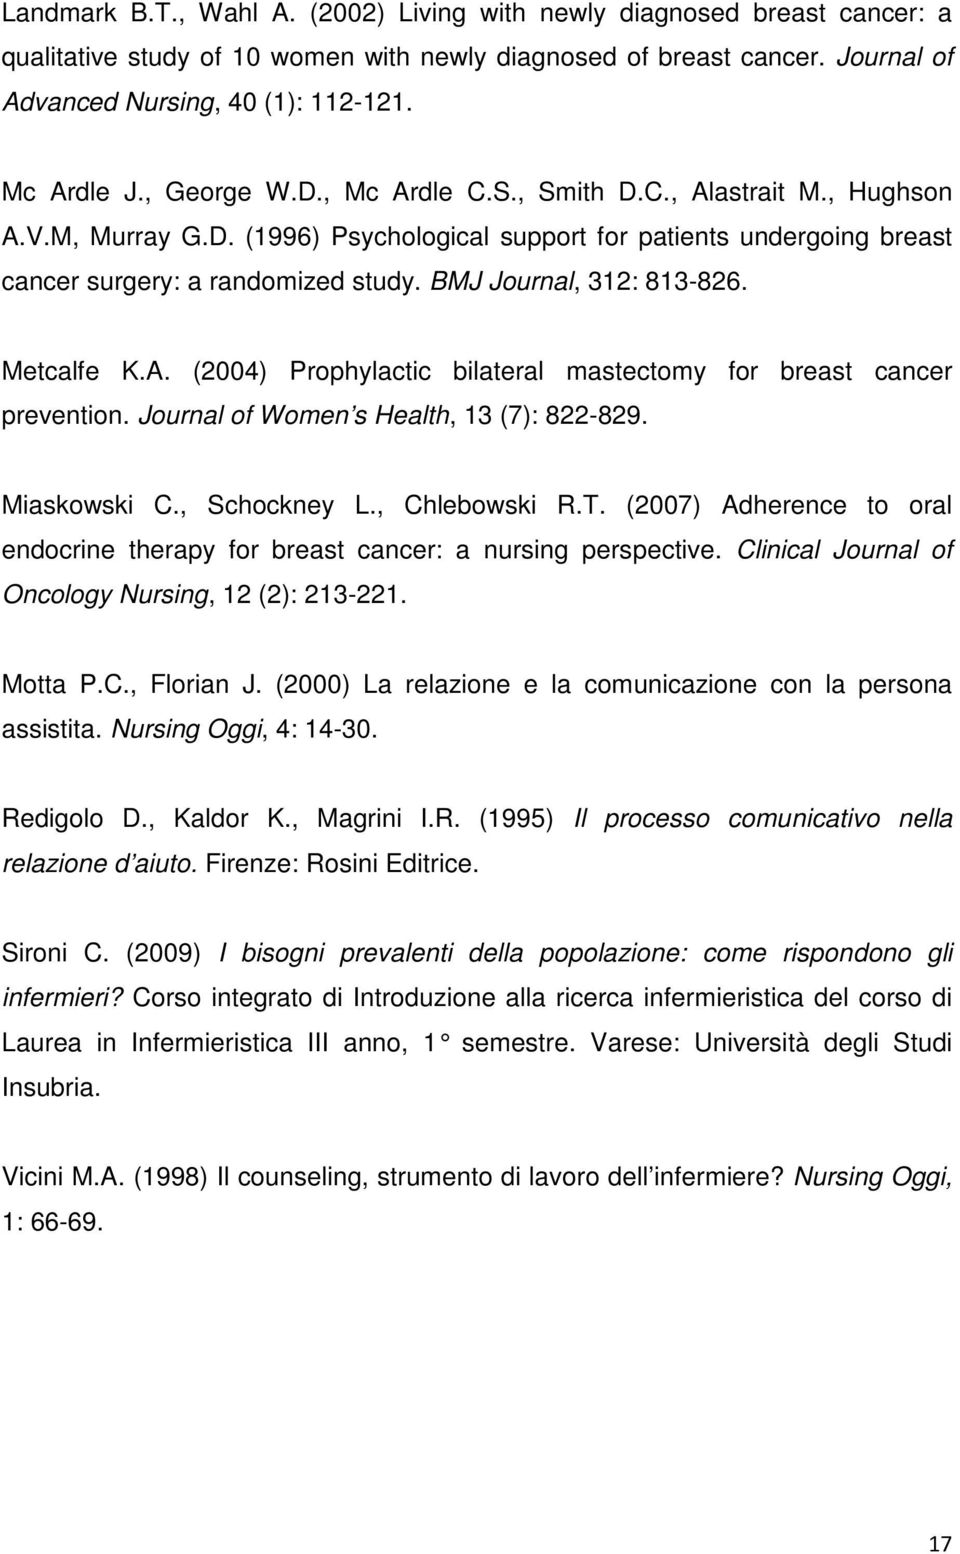 BMJ Journal, 312: 813-826. Metcalfe K.A. (2004) Prophylactic bilateral mastectomy for breast cancer prevention. Journal of Women s Health, 13 (7): 822-829. Miaskowski C., Schockney L., Chlebowski R.T.